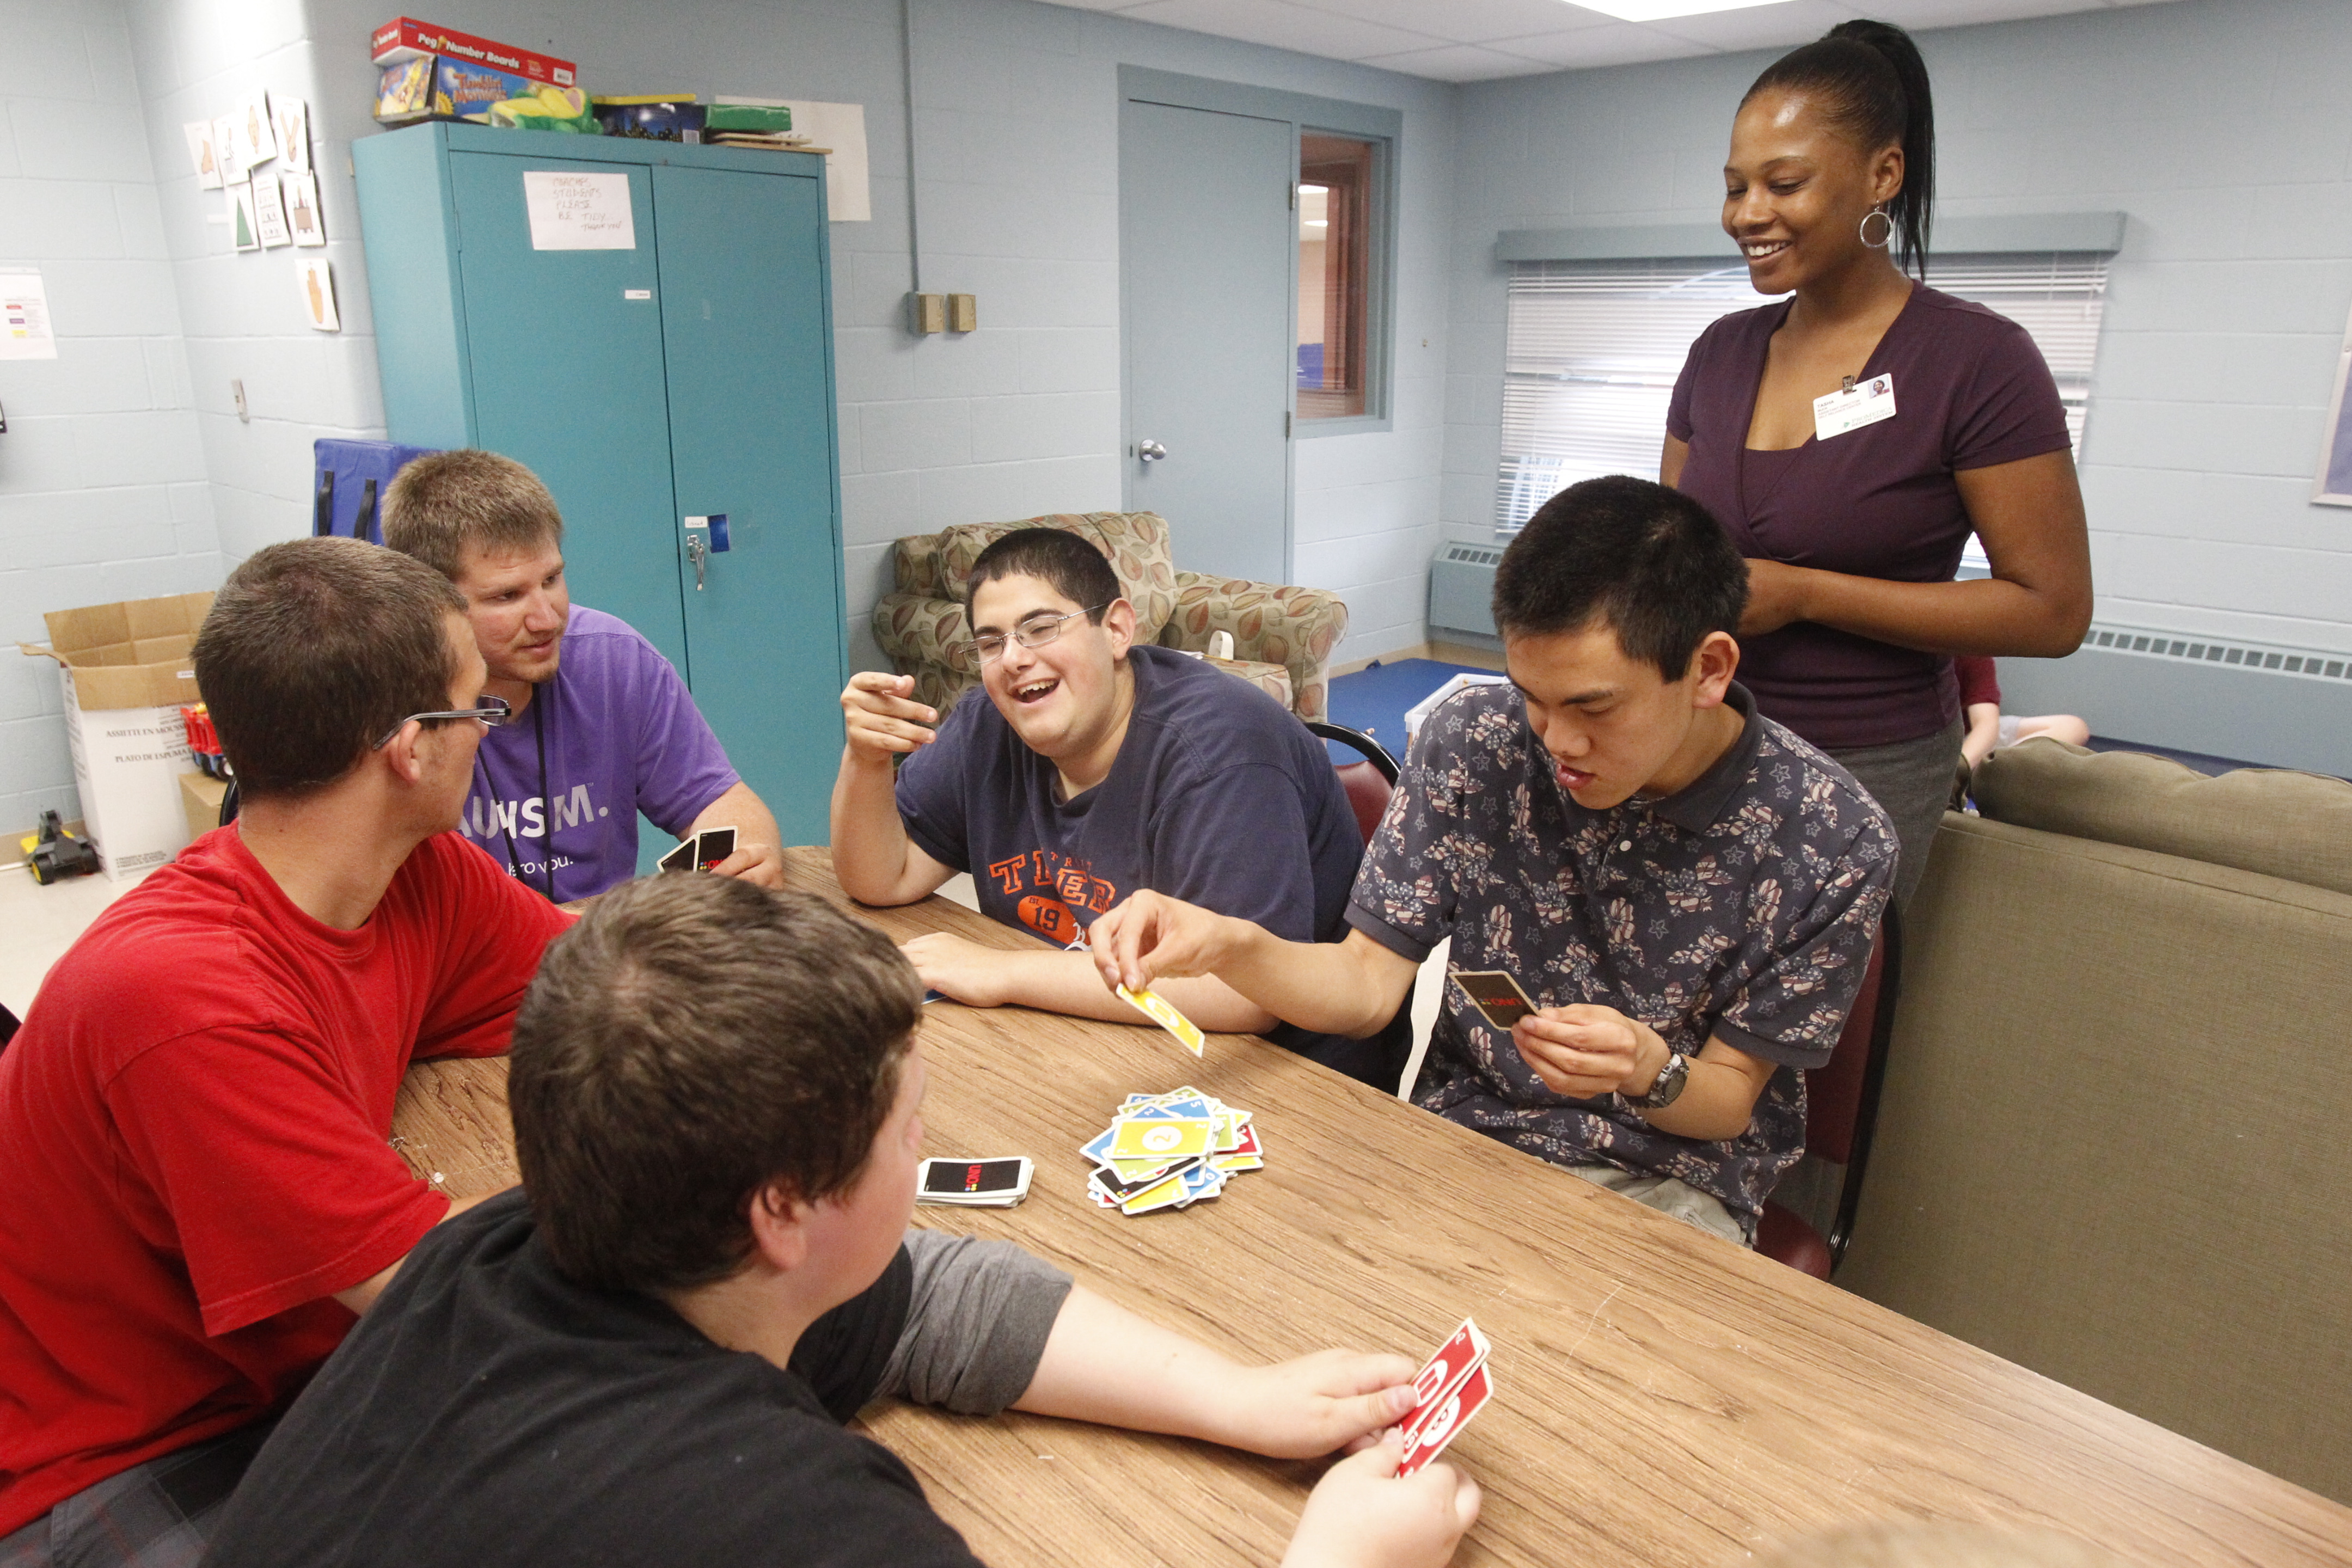 autistic teens get a place for socializing and fun